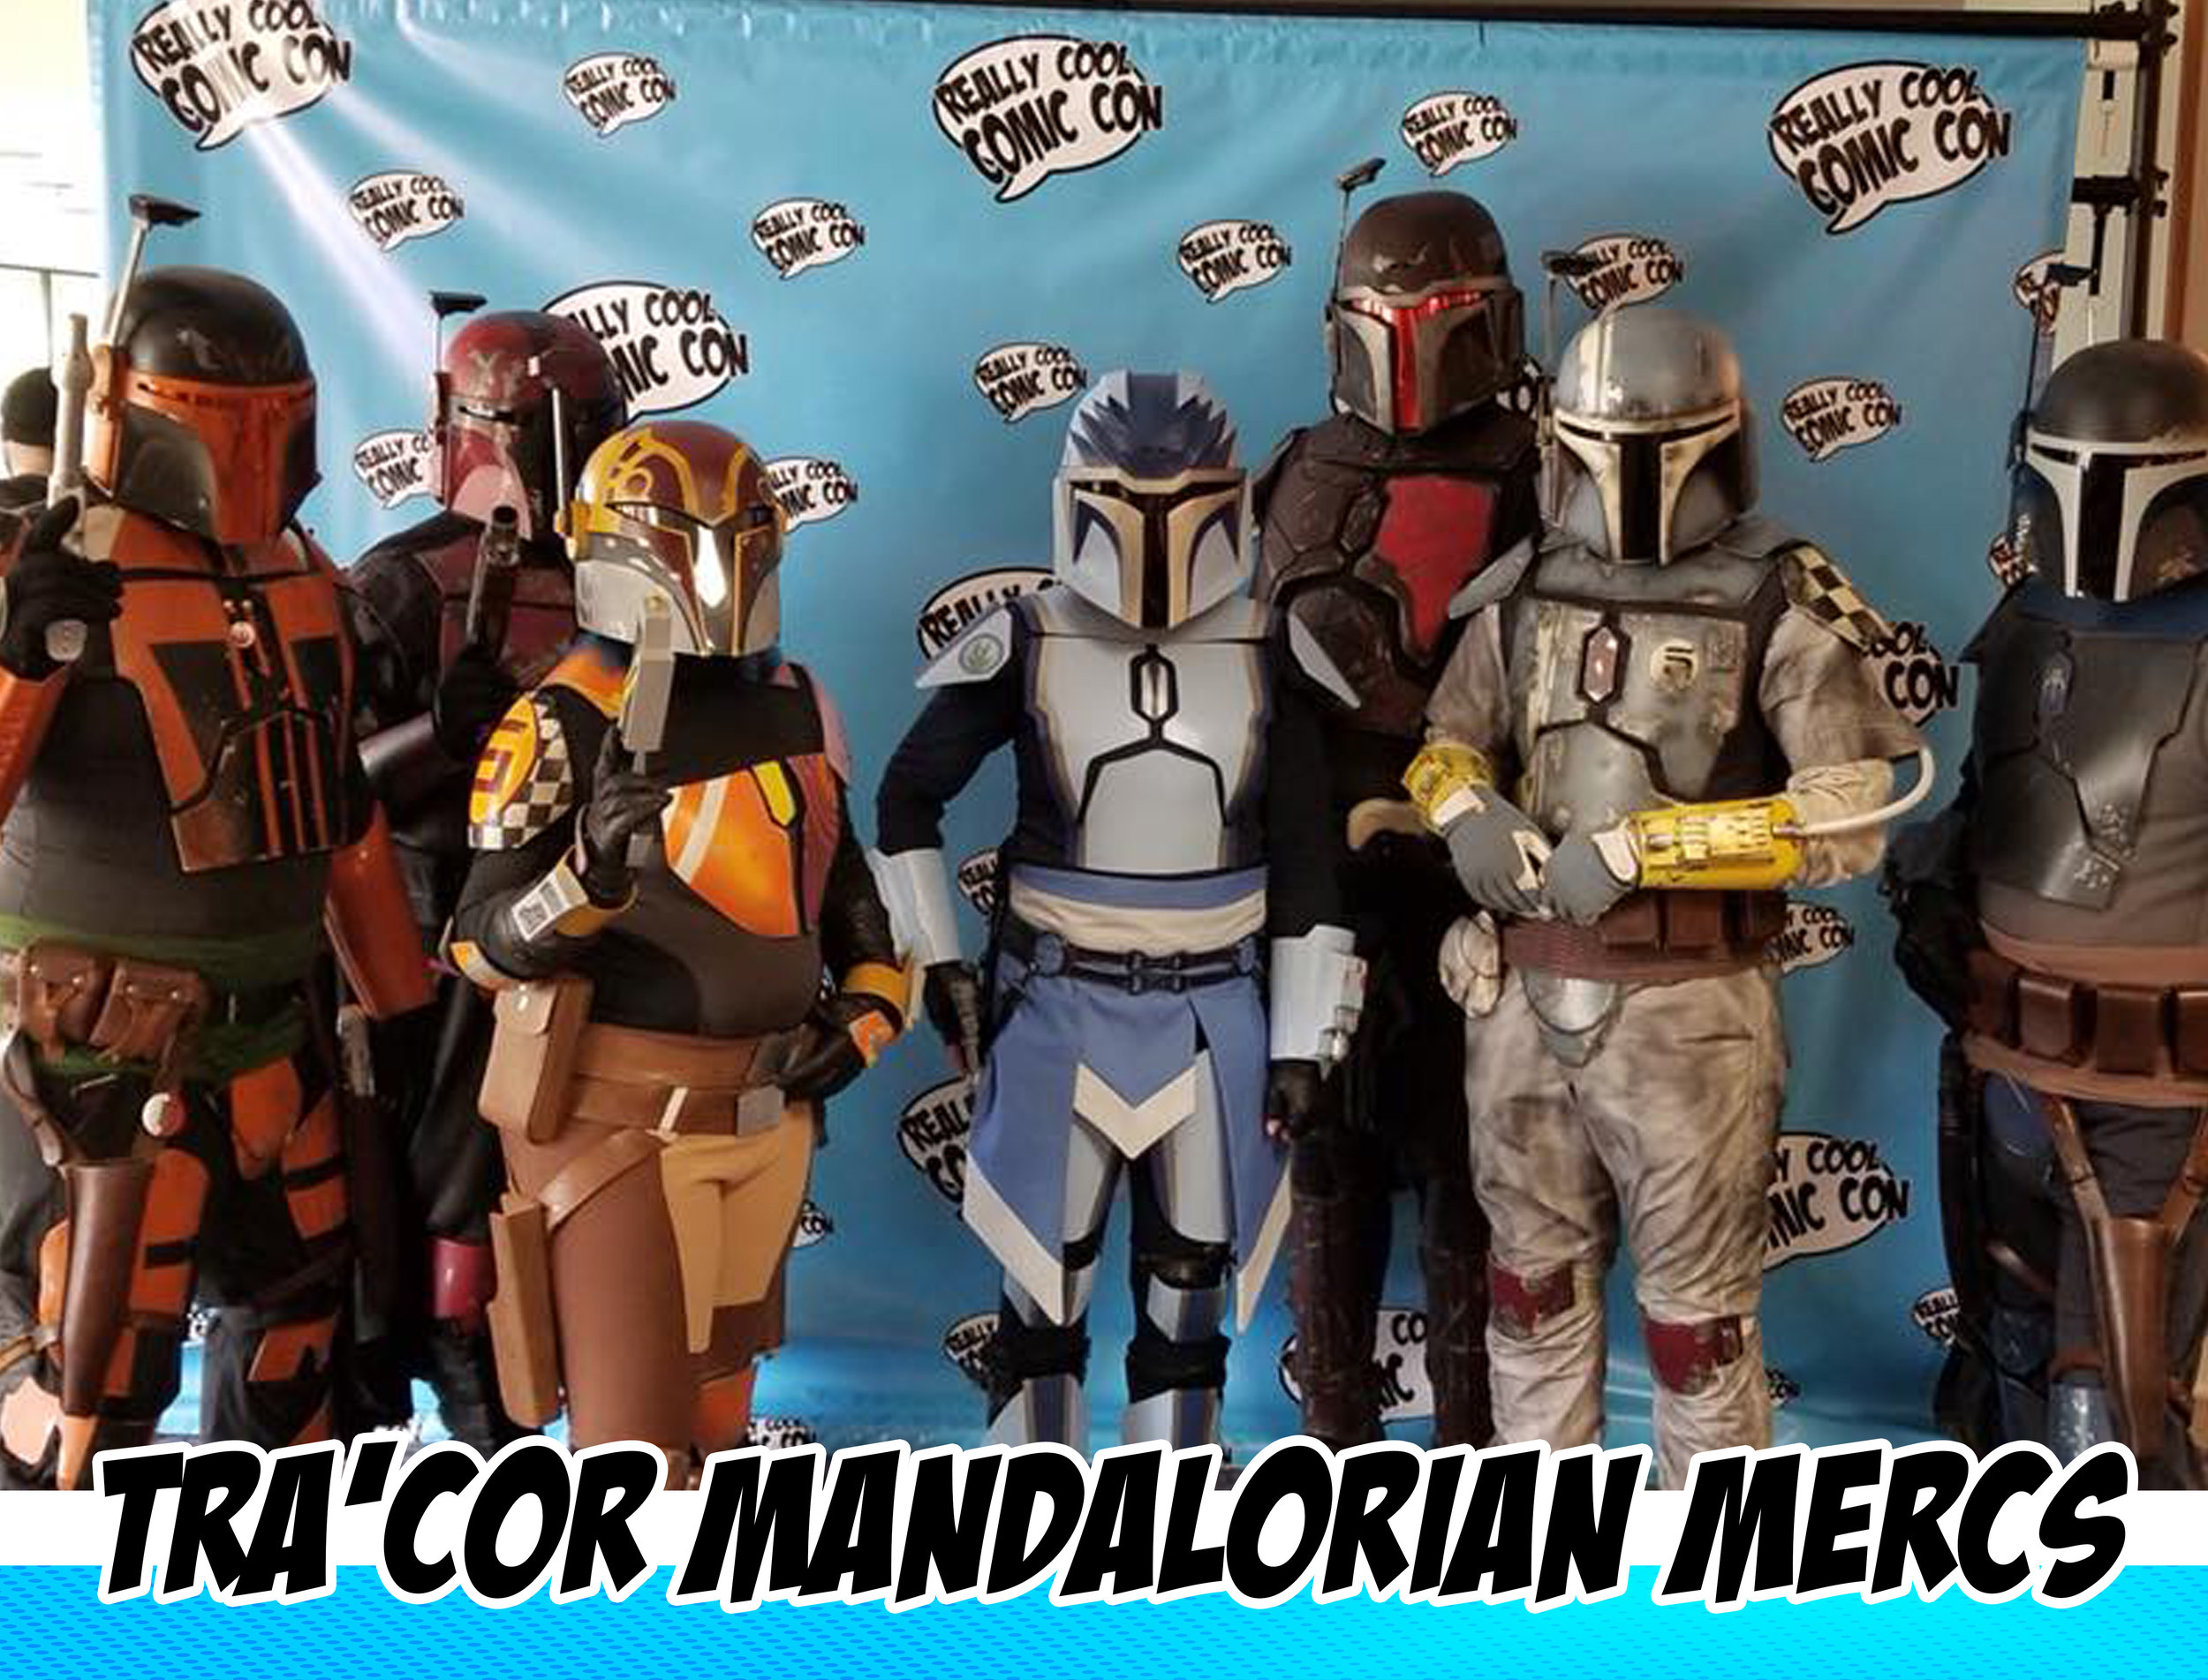 "Tra'cor Mandalorian Mercs - The Mandalorian Mercs Costume Club is an international STAR WARS™ costuming organization dedicated to celebrating the STAR WARS™ universe through the creation, display, and wearing of quality character costumes that represent the Mandalorian characters and culture from the STAR WARS™ sagas.The MMCC unites individuals with a common love for STAR WARS™ and the Mandalorian culture/characters while encouraging self-improvement, personal growth, family involvement, and fellowship with peers.The MMCC promotes interest in STAR WARS™ and facilitates the use of these costumes for STAR WARS™-related events as well as contributing to the local community through costumed charity and volunteer work.MMCC is unique as it encourages is membership to embrace creativity and individualism as opposed to costume organization based on visual accuracy from the STAR WARS™ films and canon reference material. The MMCC is an inclusive and friendly club, following the Mandalorian way of ""Clans"" or family units and a clans' ability to adopt anyone who wishes to be a Mandalorian.Facebook HERE, Website HERE"